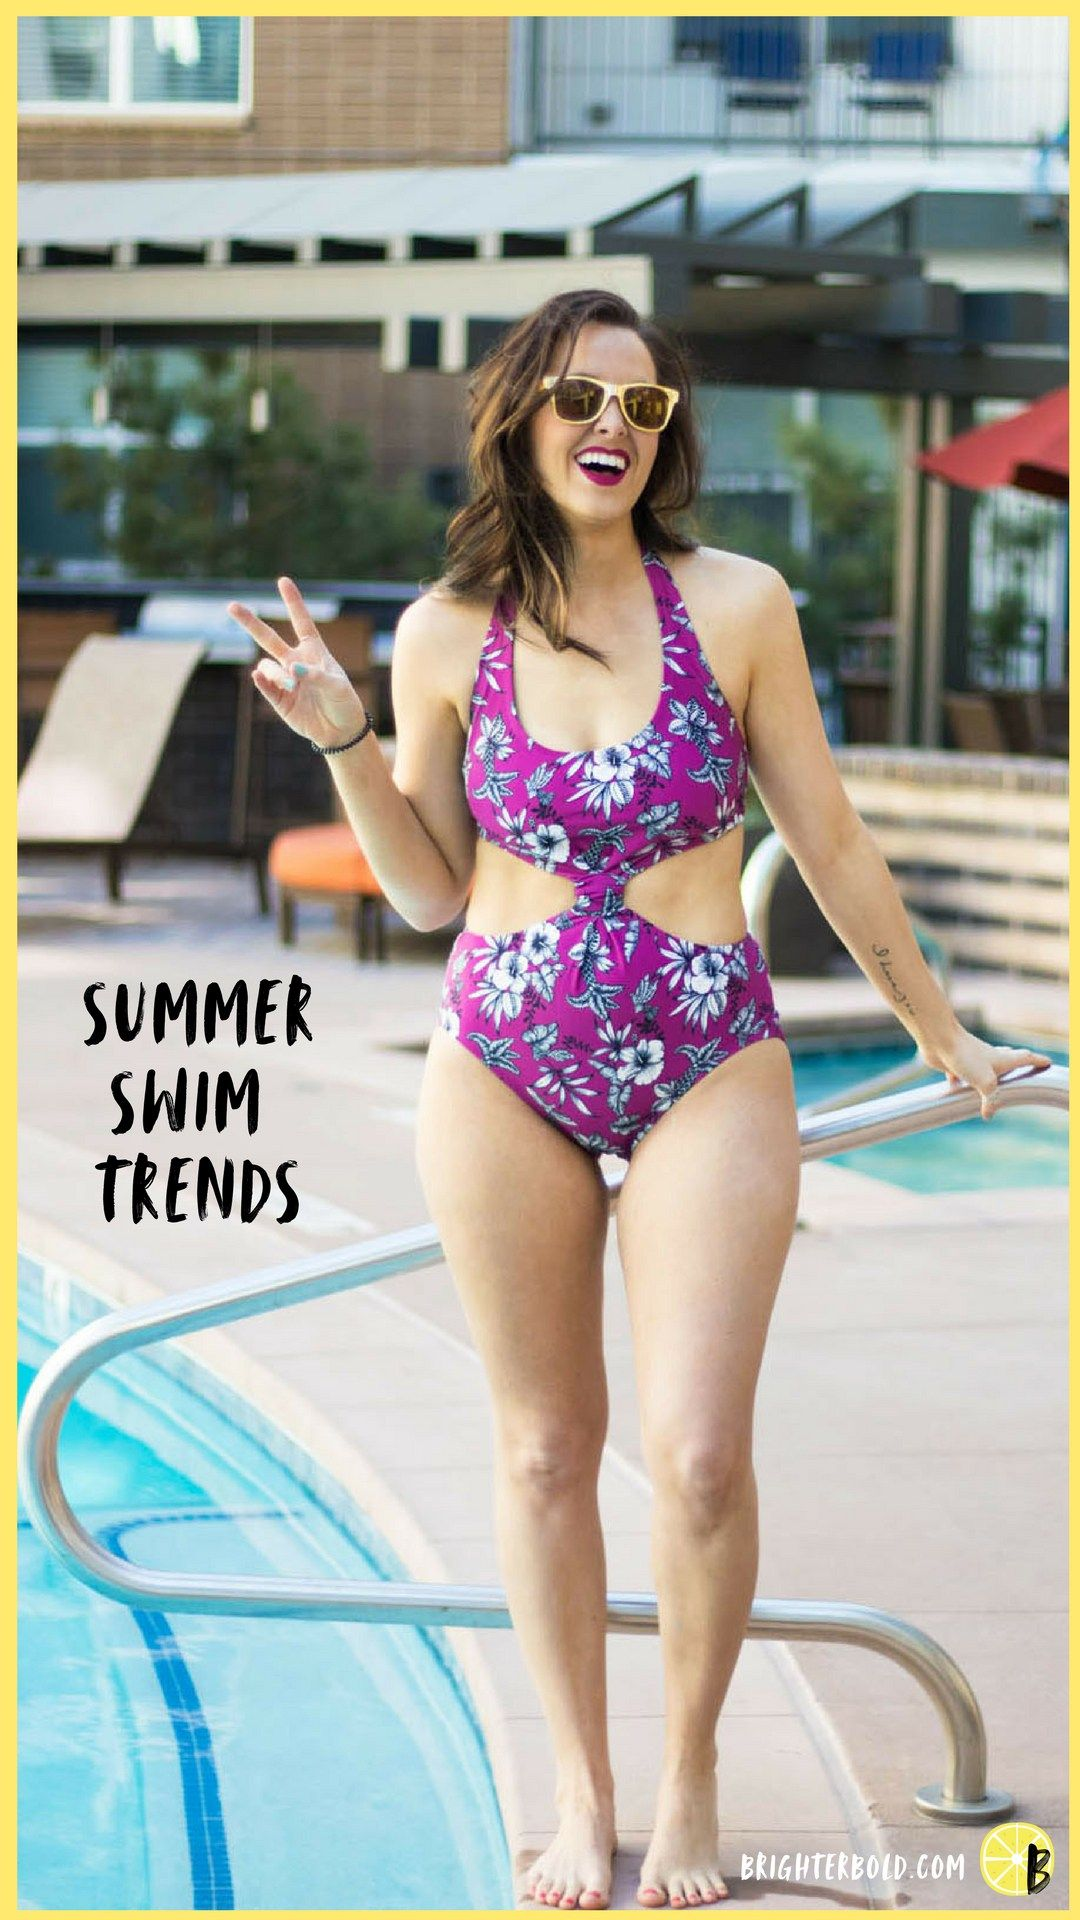 To acquire Top 5 suit bathing trends for summer picture trends